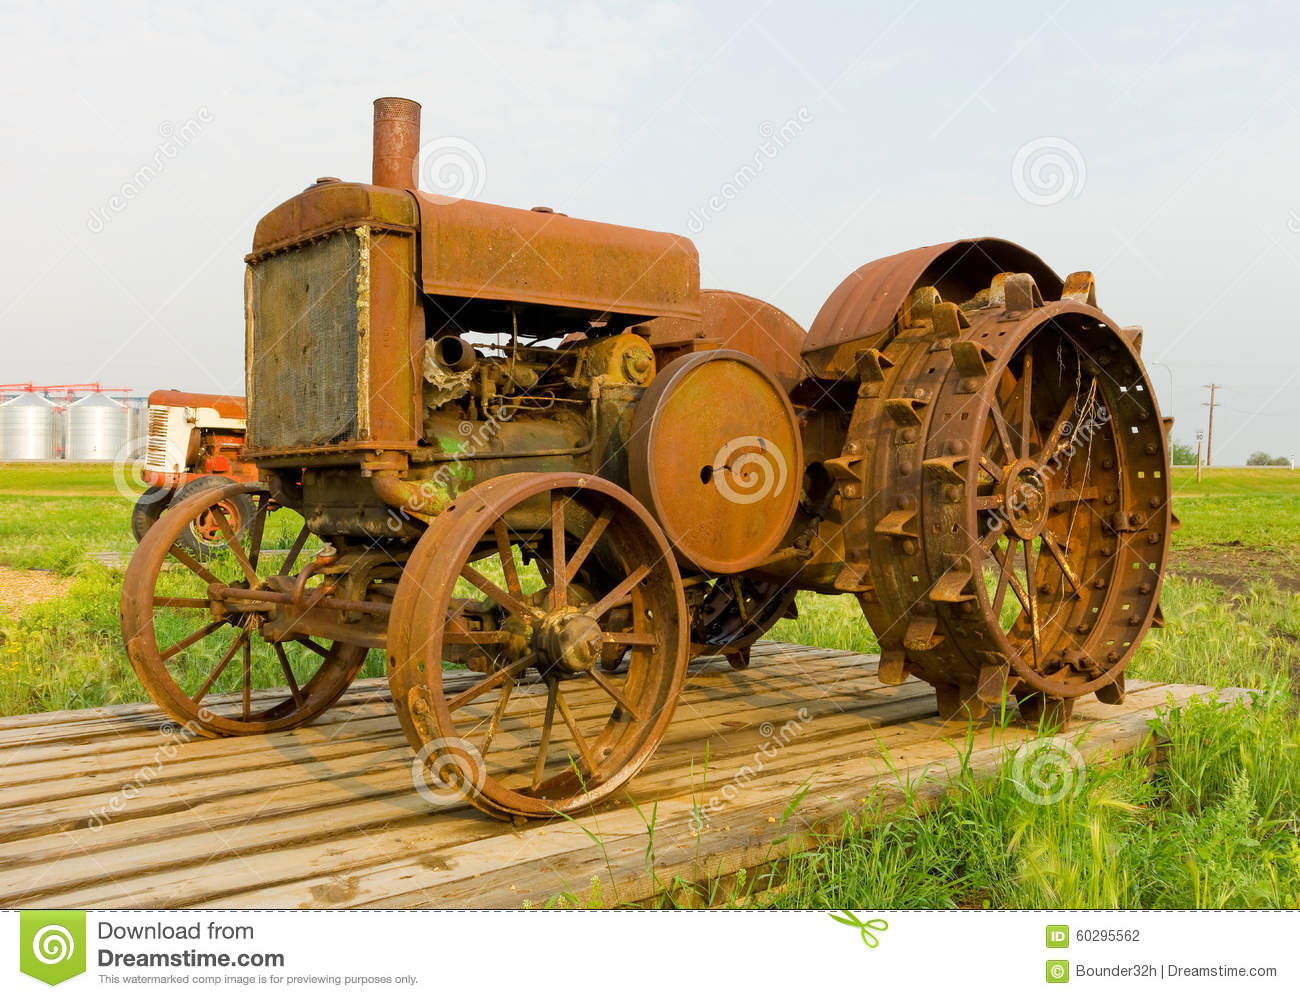 An Antique Tractor With Spiked Iron Wheels At An Agricultural.